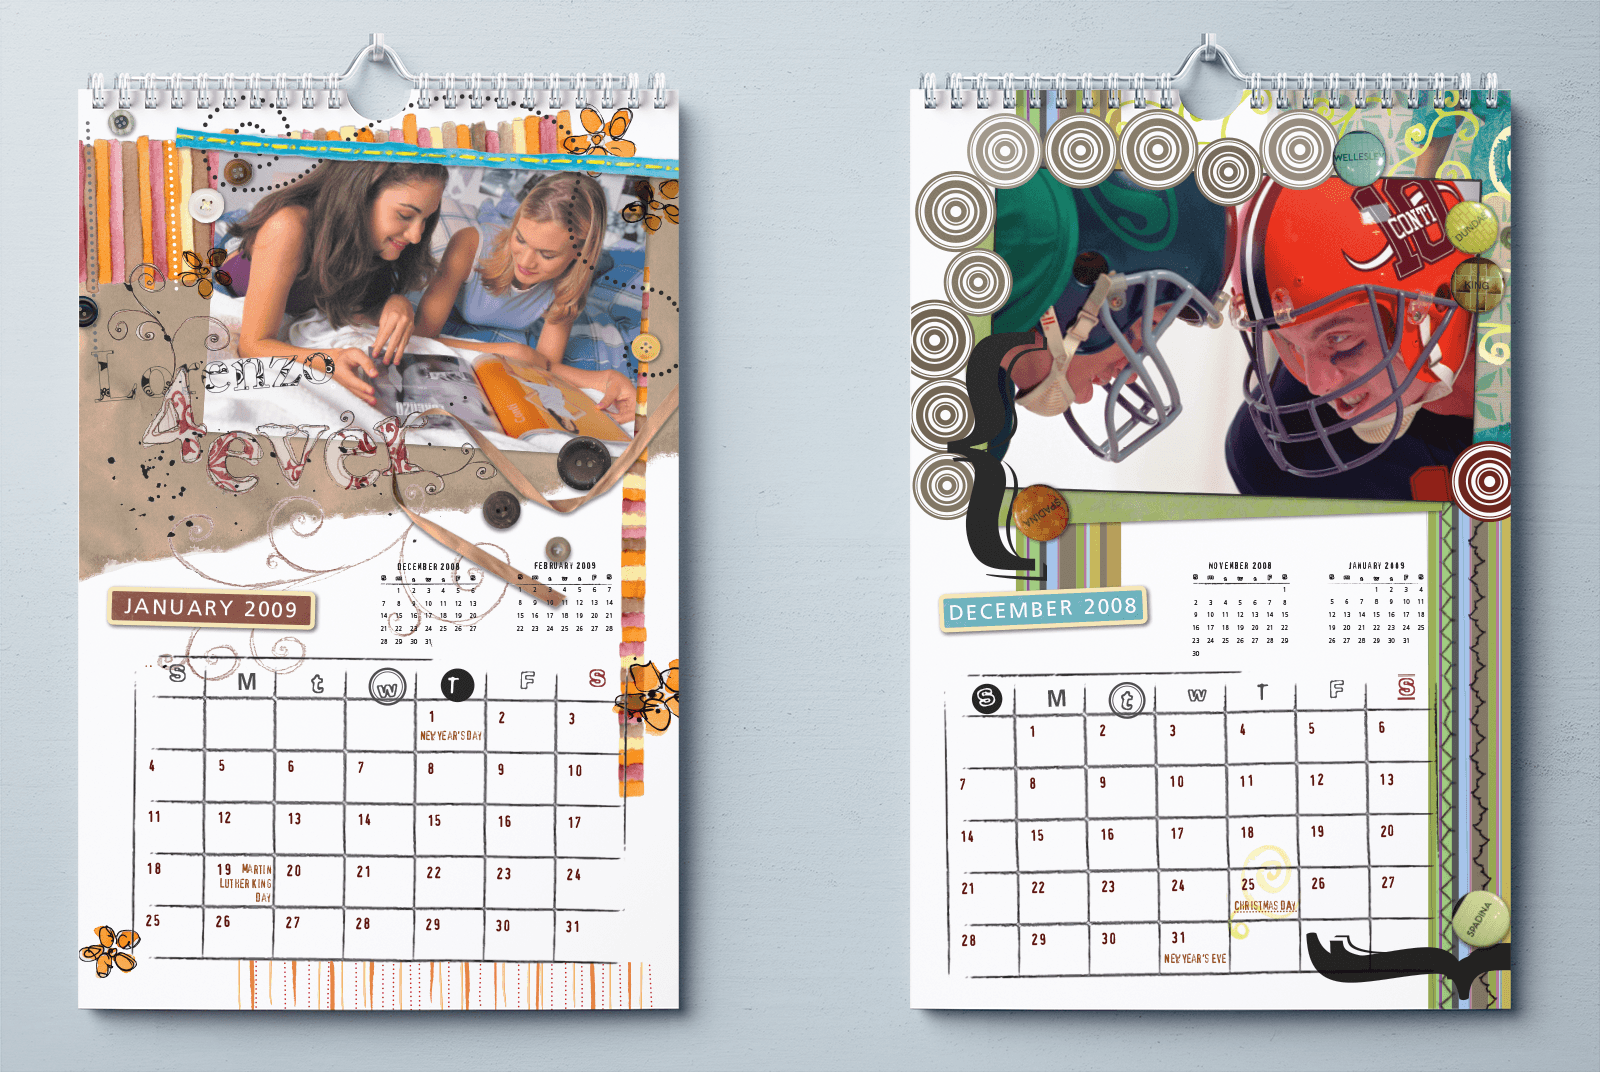 http://bigeyes.co.il/wp-content/uploads/2019/07/highschool-calendar-4.png